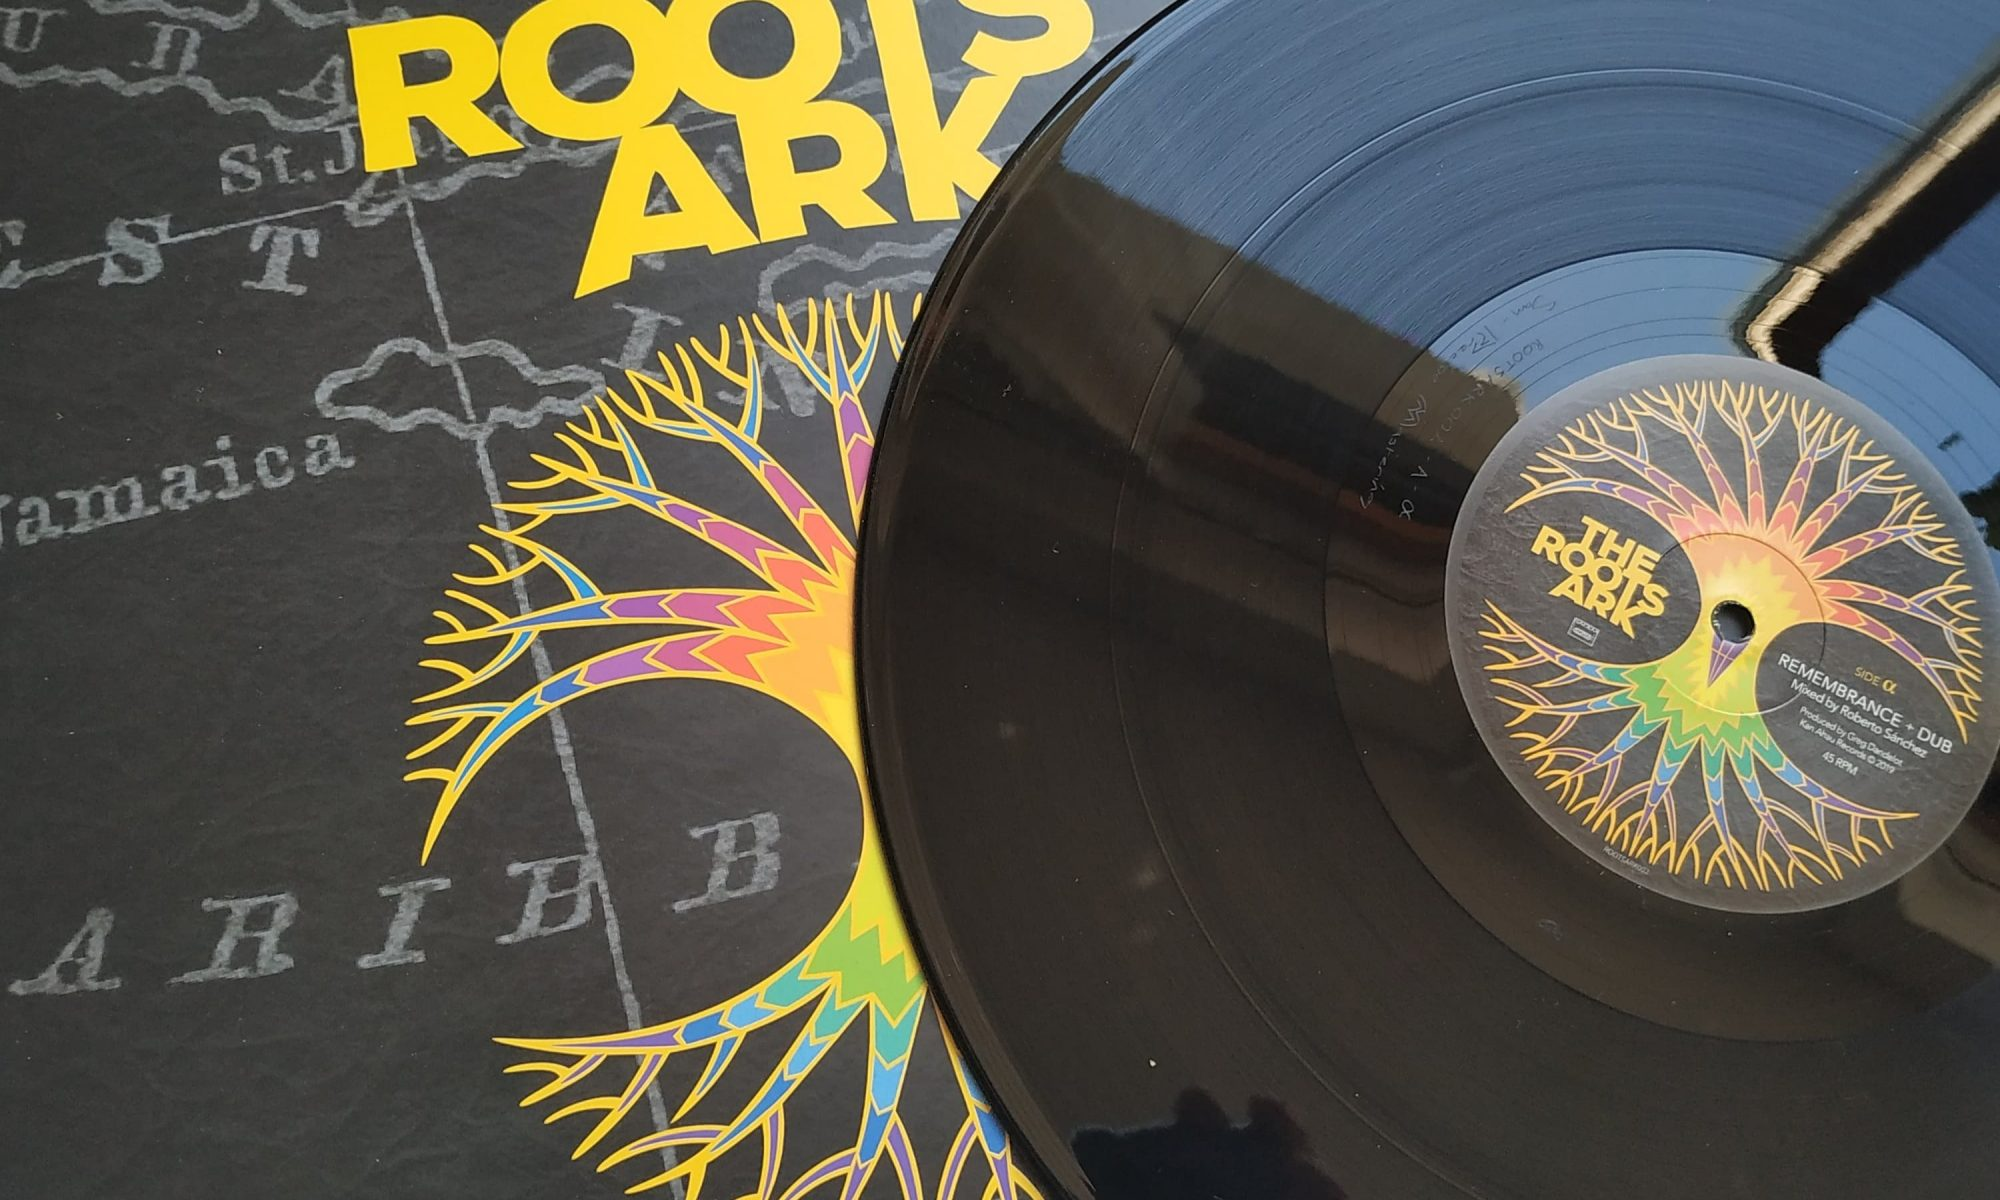 The Roots Ark, maxi 45T, vinyle